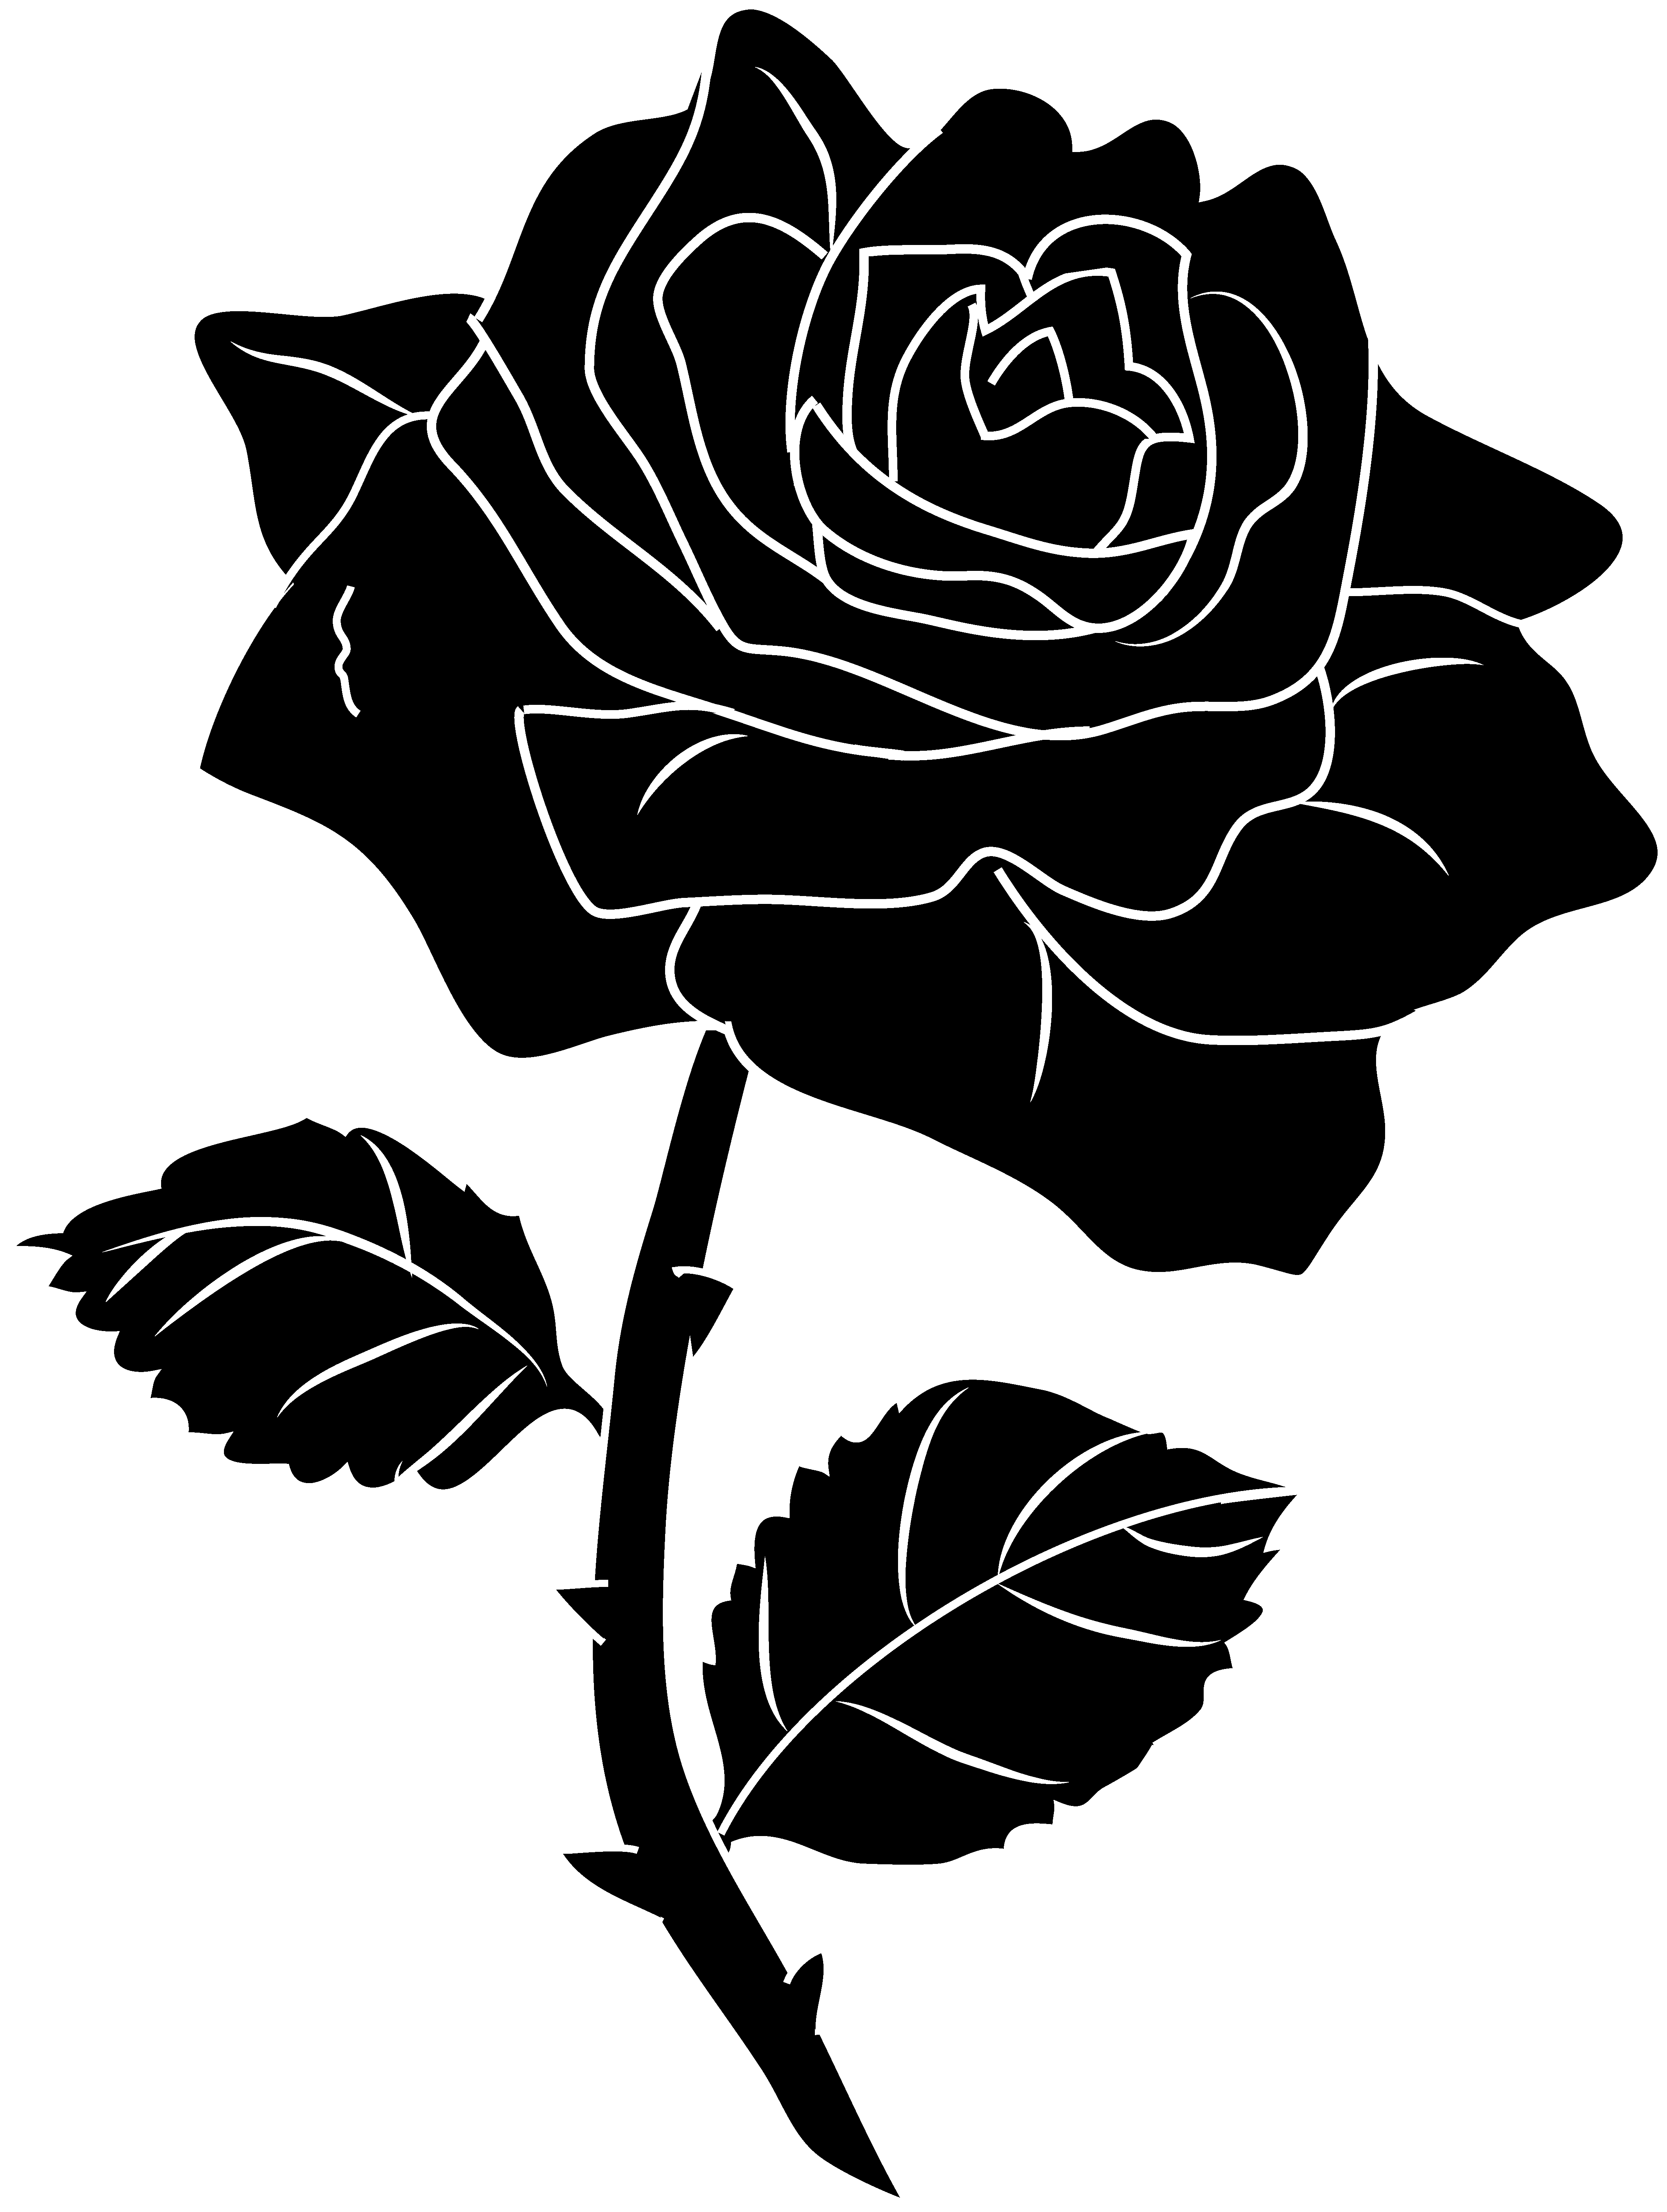 Rose black and white clipart collection Silhouette clip